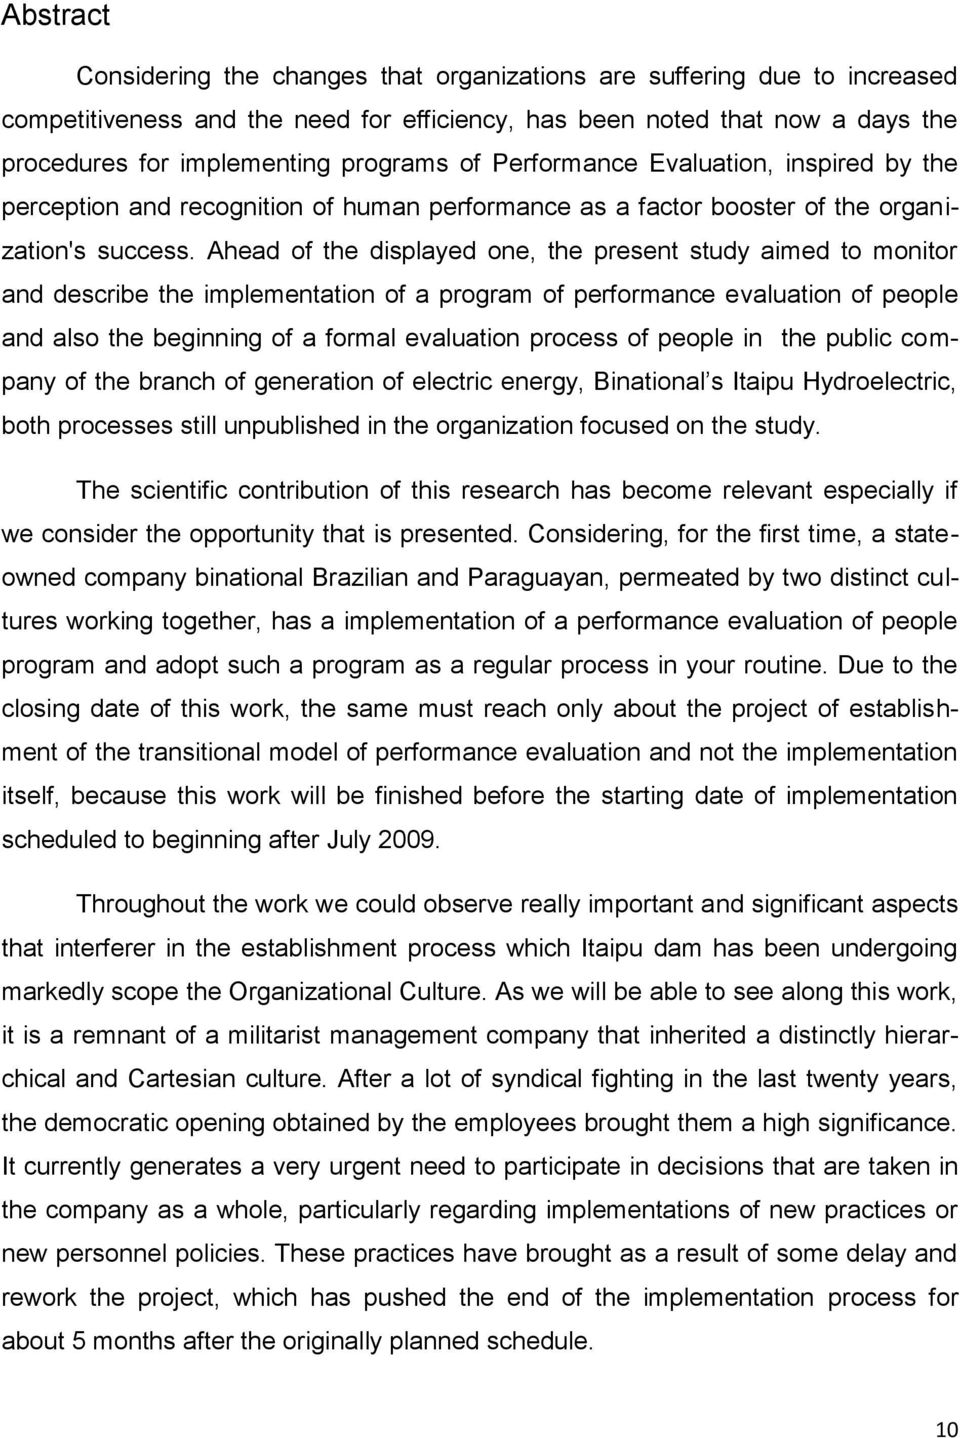 Ahead of the displayed one, the present study aimed to monitor and describe the implementation of a program of performance evaluation of people and also the beginning of a formal evaluation process